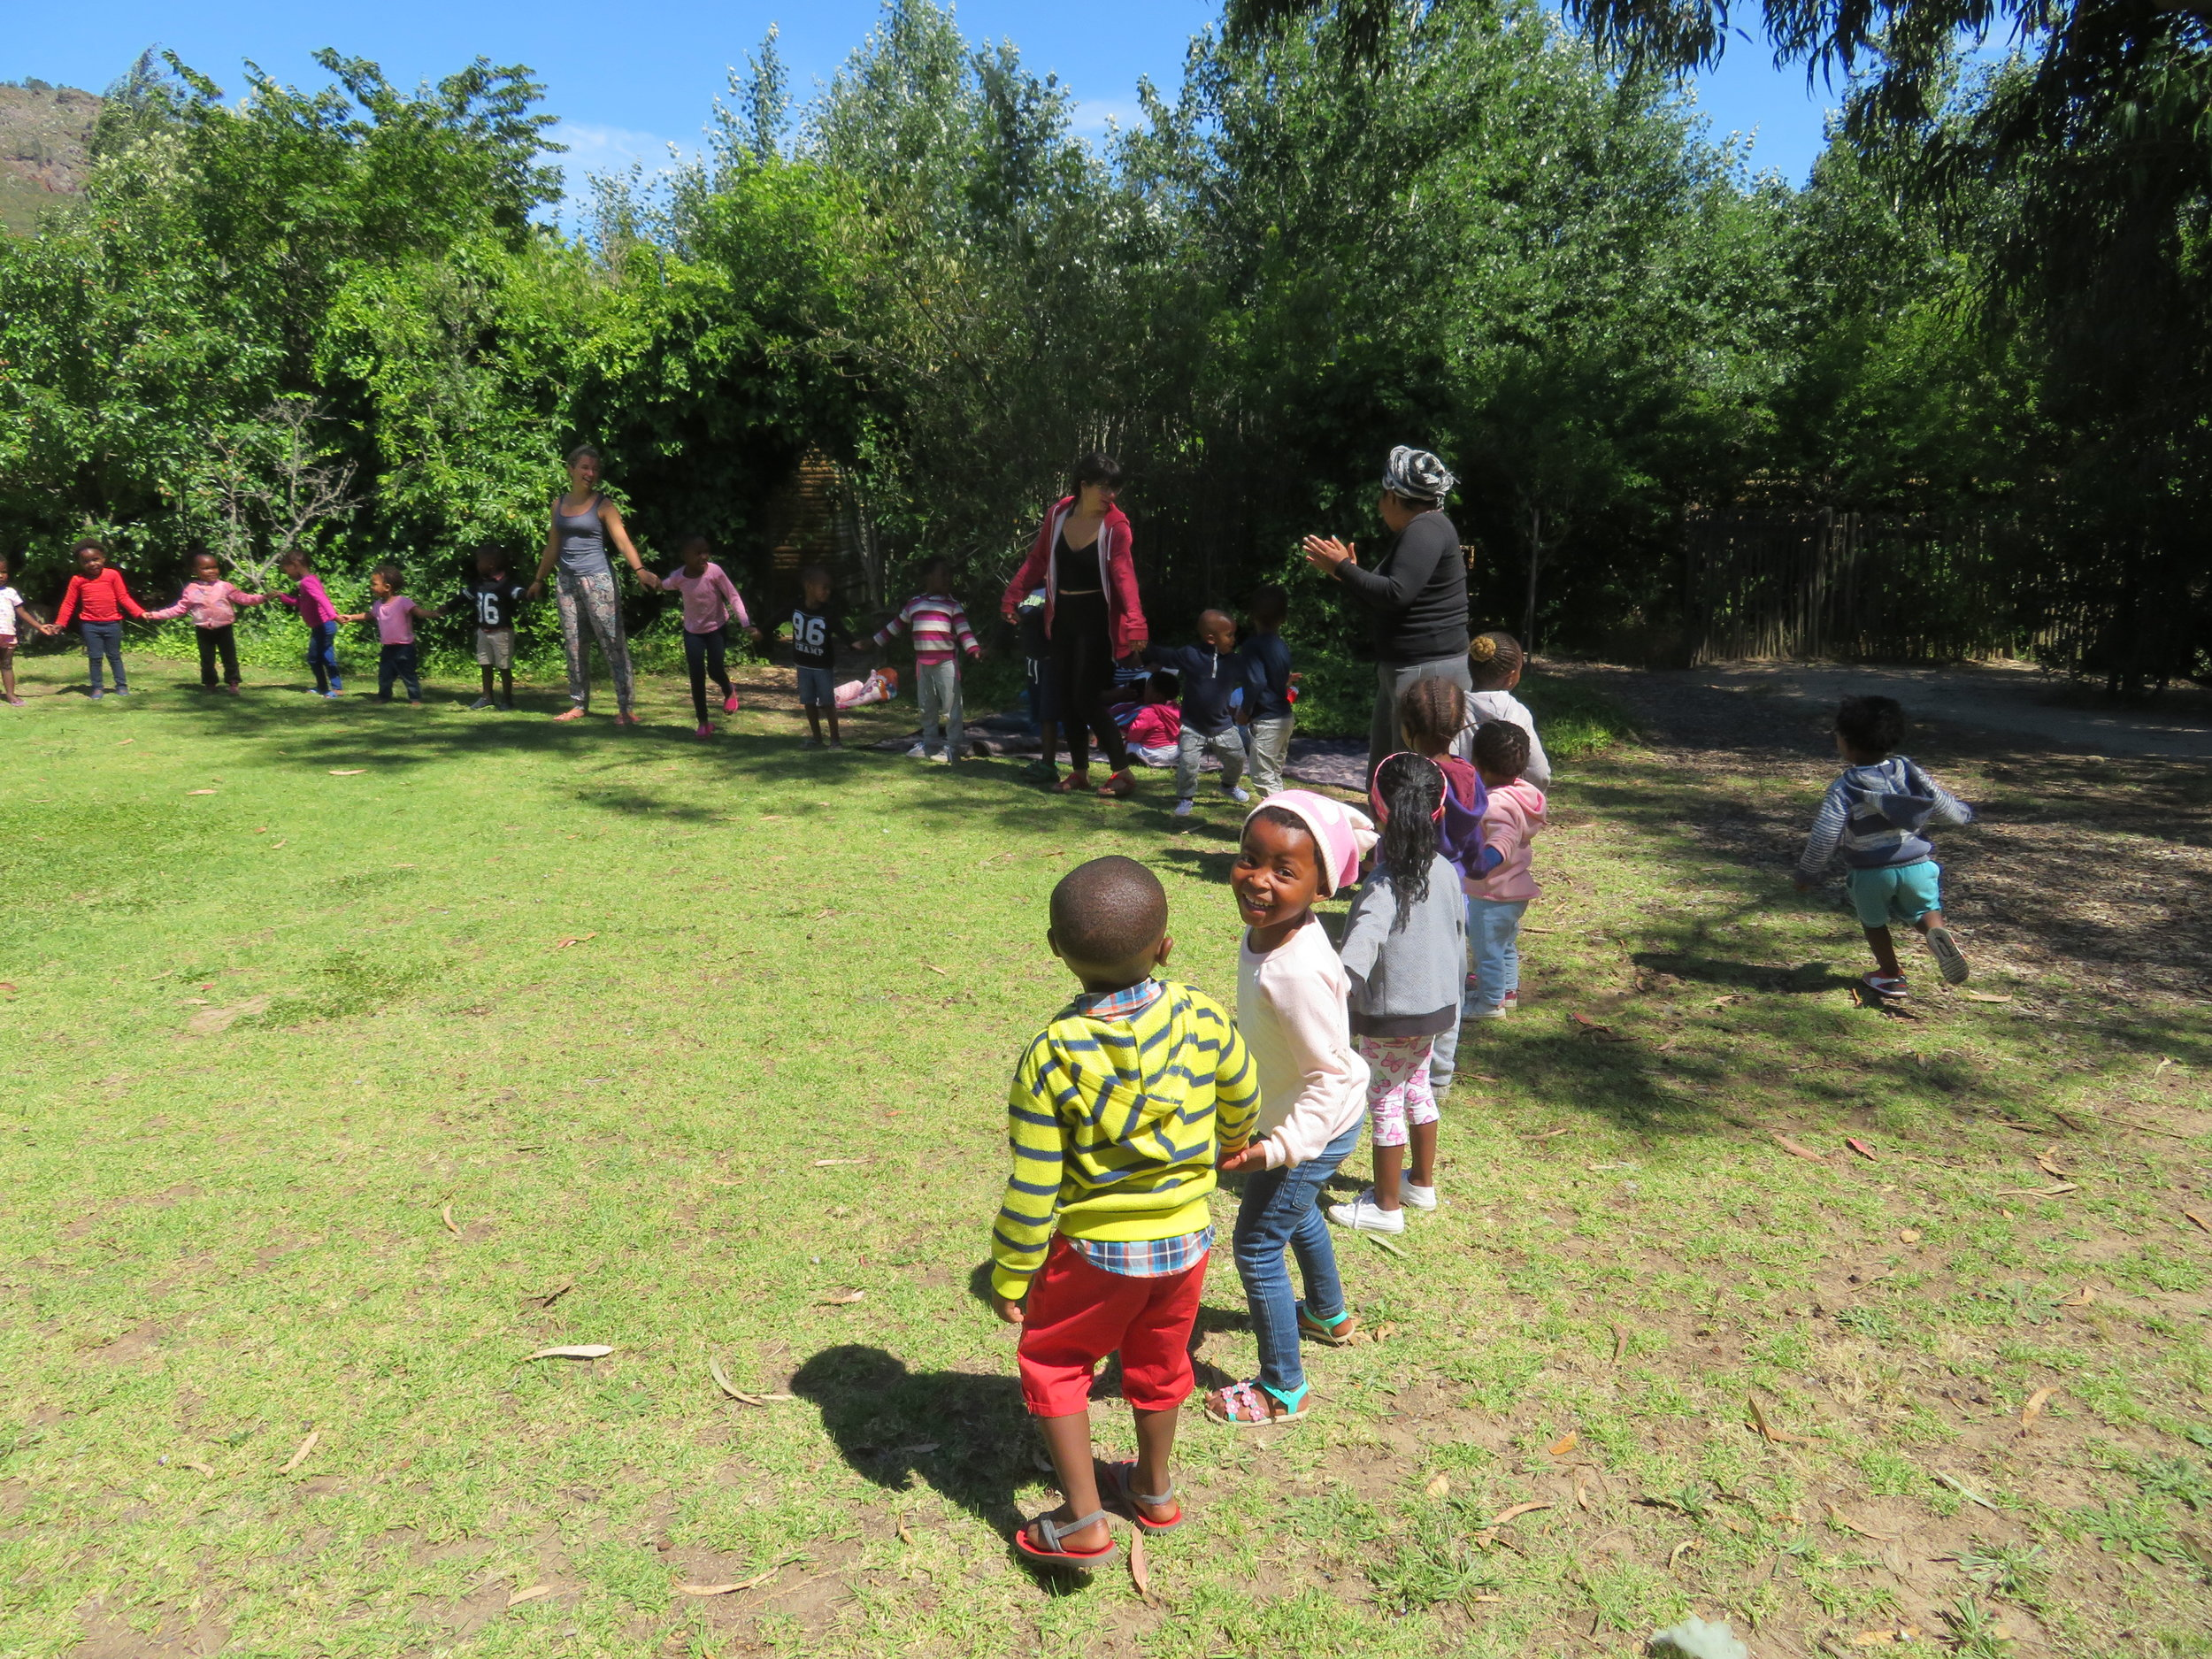 Children play in the natural environment.JPG